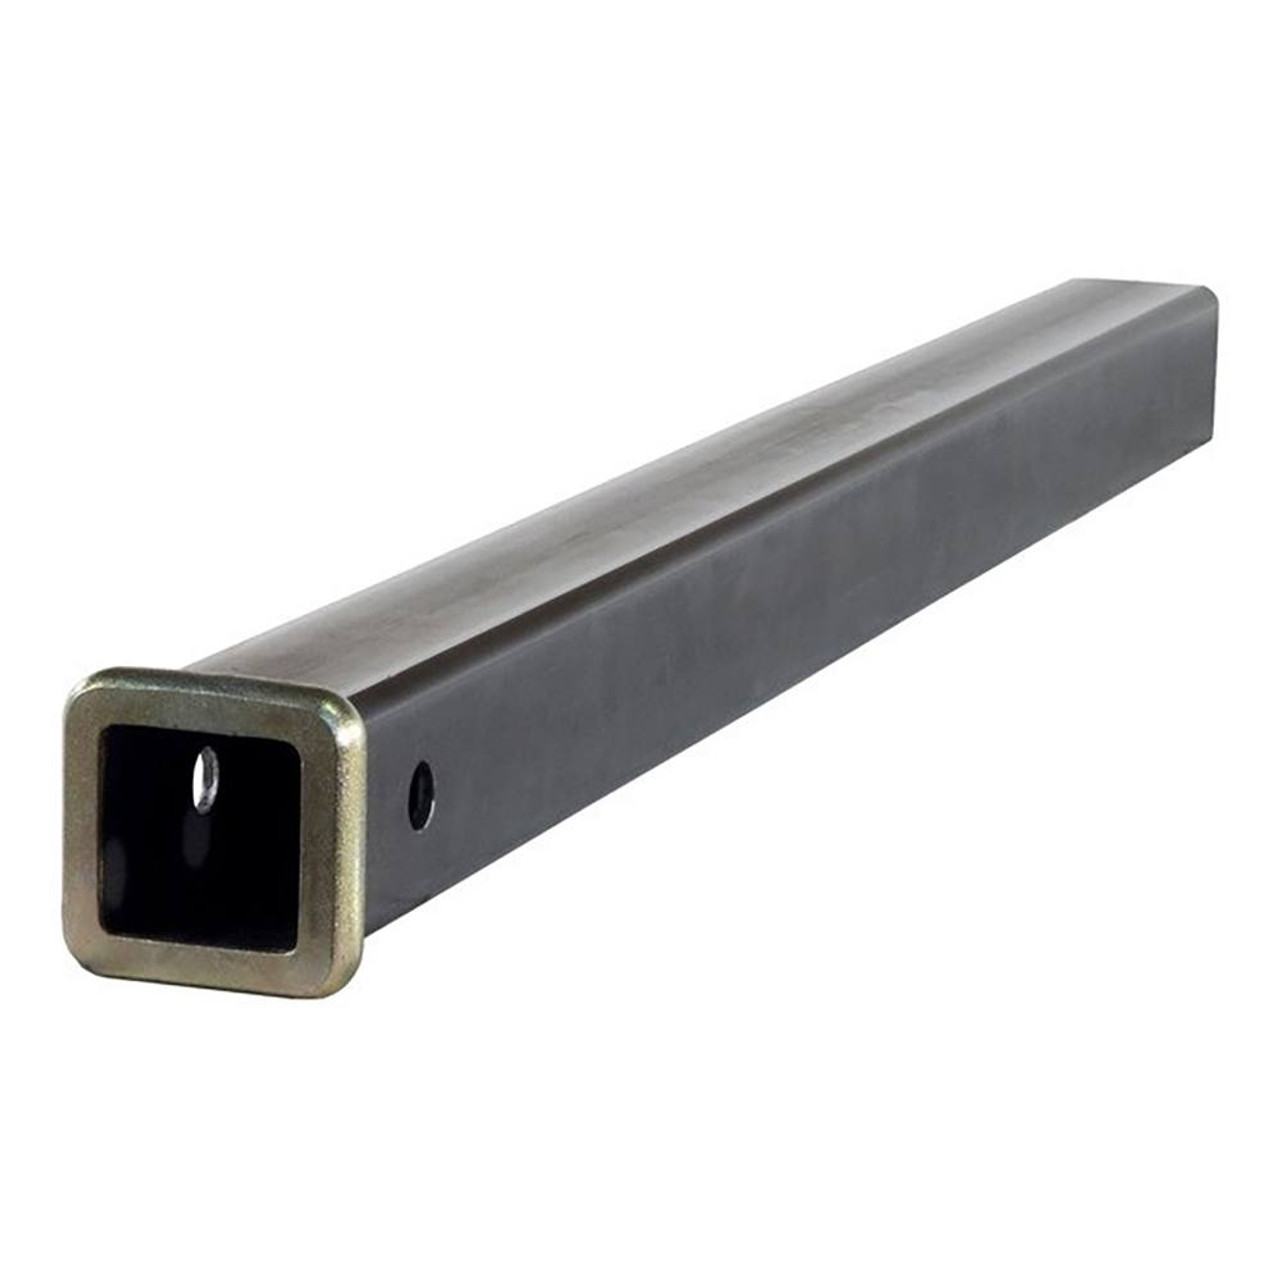 Receiver Tube- Raw Finish- 36 in. Length- 2 in. ID- Fits 1.25/2 in. Ball Mount- w/0.5 in. Collar-